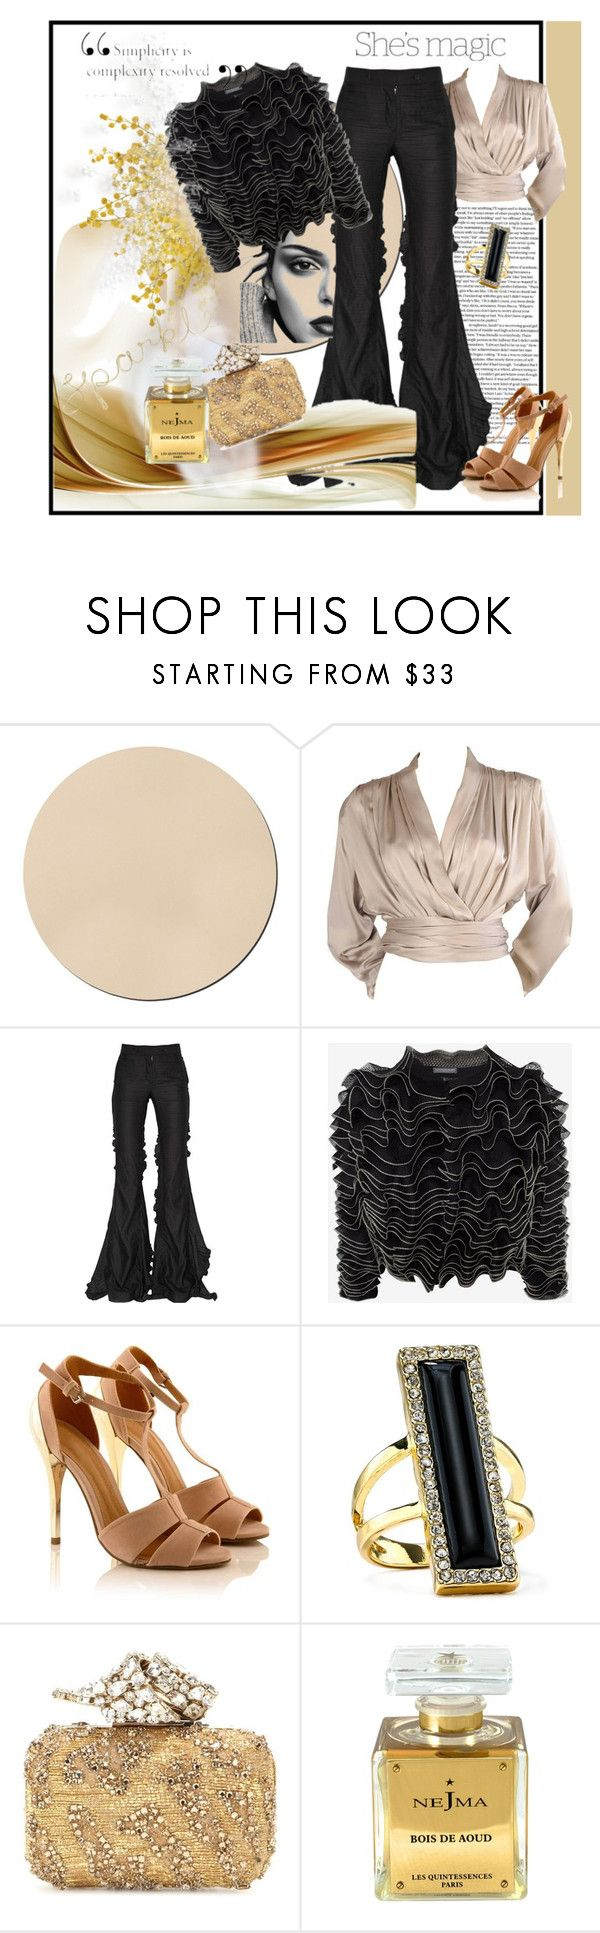 """Untitled #1012"" by talatay ❤ liked on Polyvore featuring WALL, Yves Saint Laurent, Marco de Vincenzo, Nicole, Alexander McQueen, House of Harlow 1960, Jimmy Choo and Nejma"